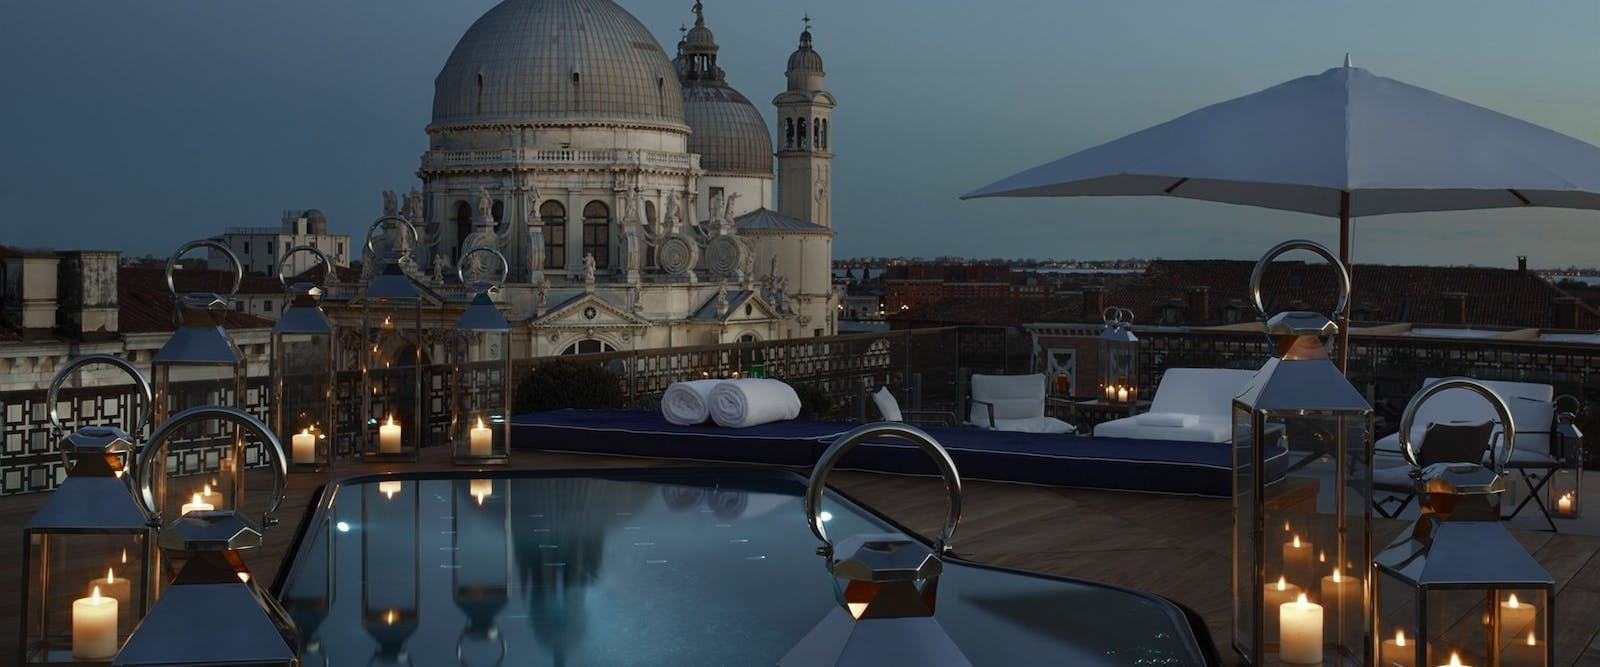 The Rendentore Terazza Suite Plunging Pool at Gritti Palace, Venice, Italy